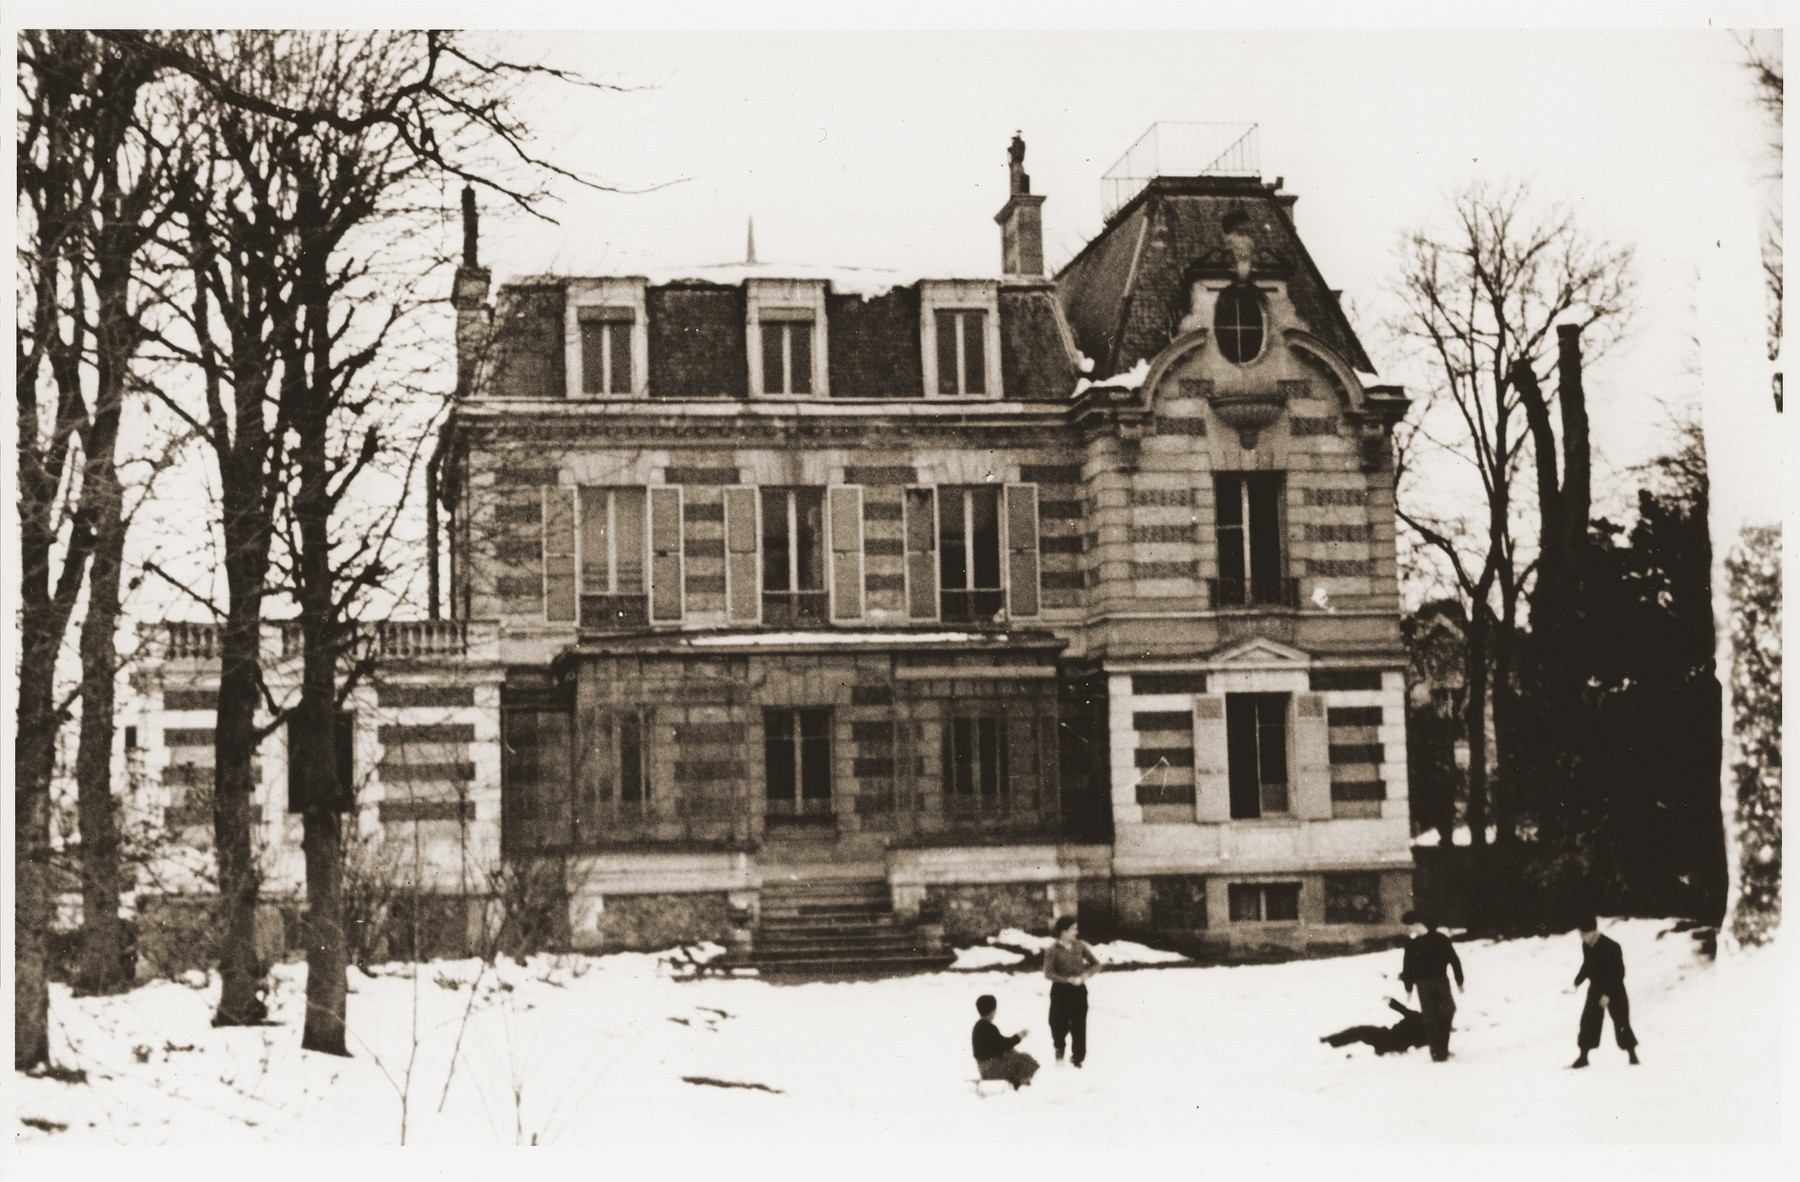 Jewish DP youth play in the snow outside the OSE (Oeuvre de Secours aux Enfants) children's home in Le Vésinet.